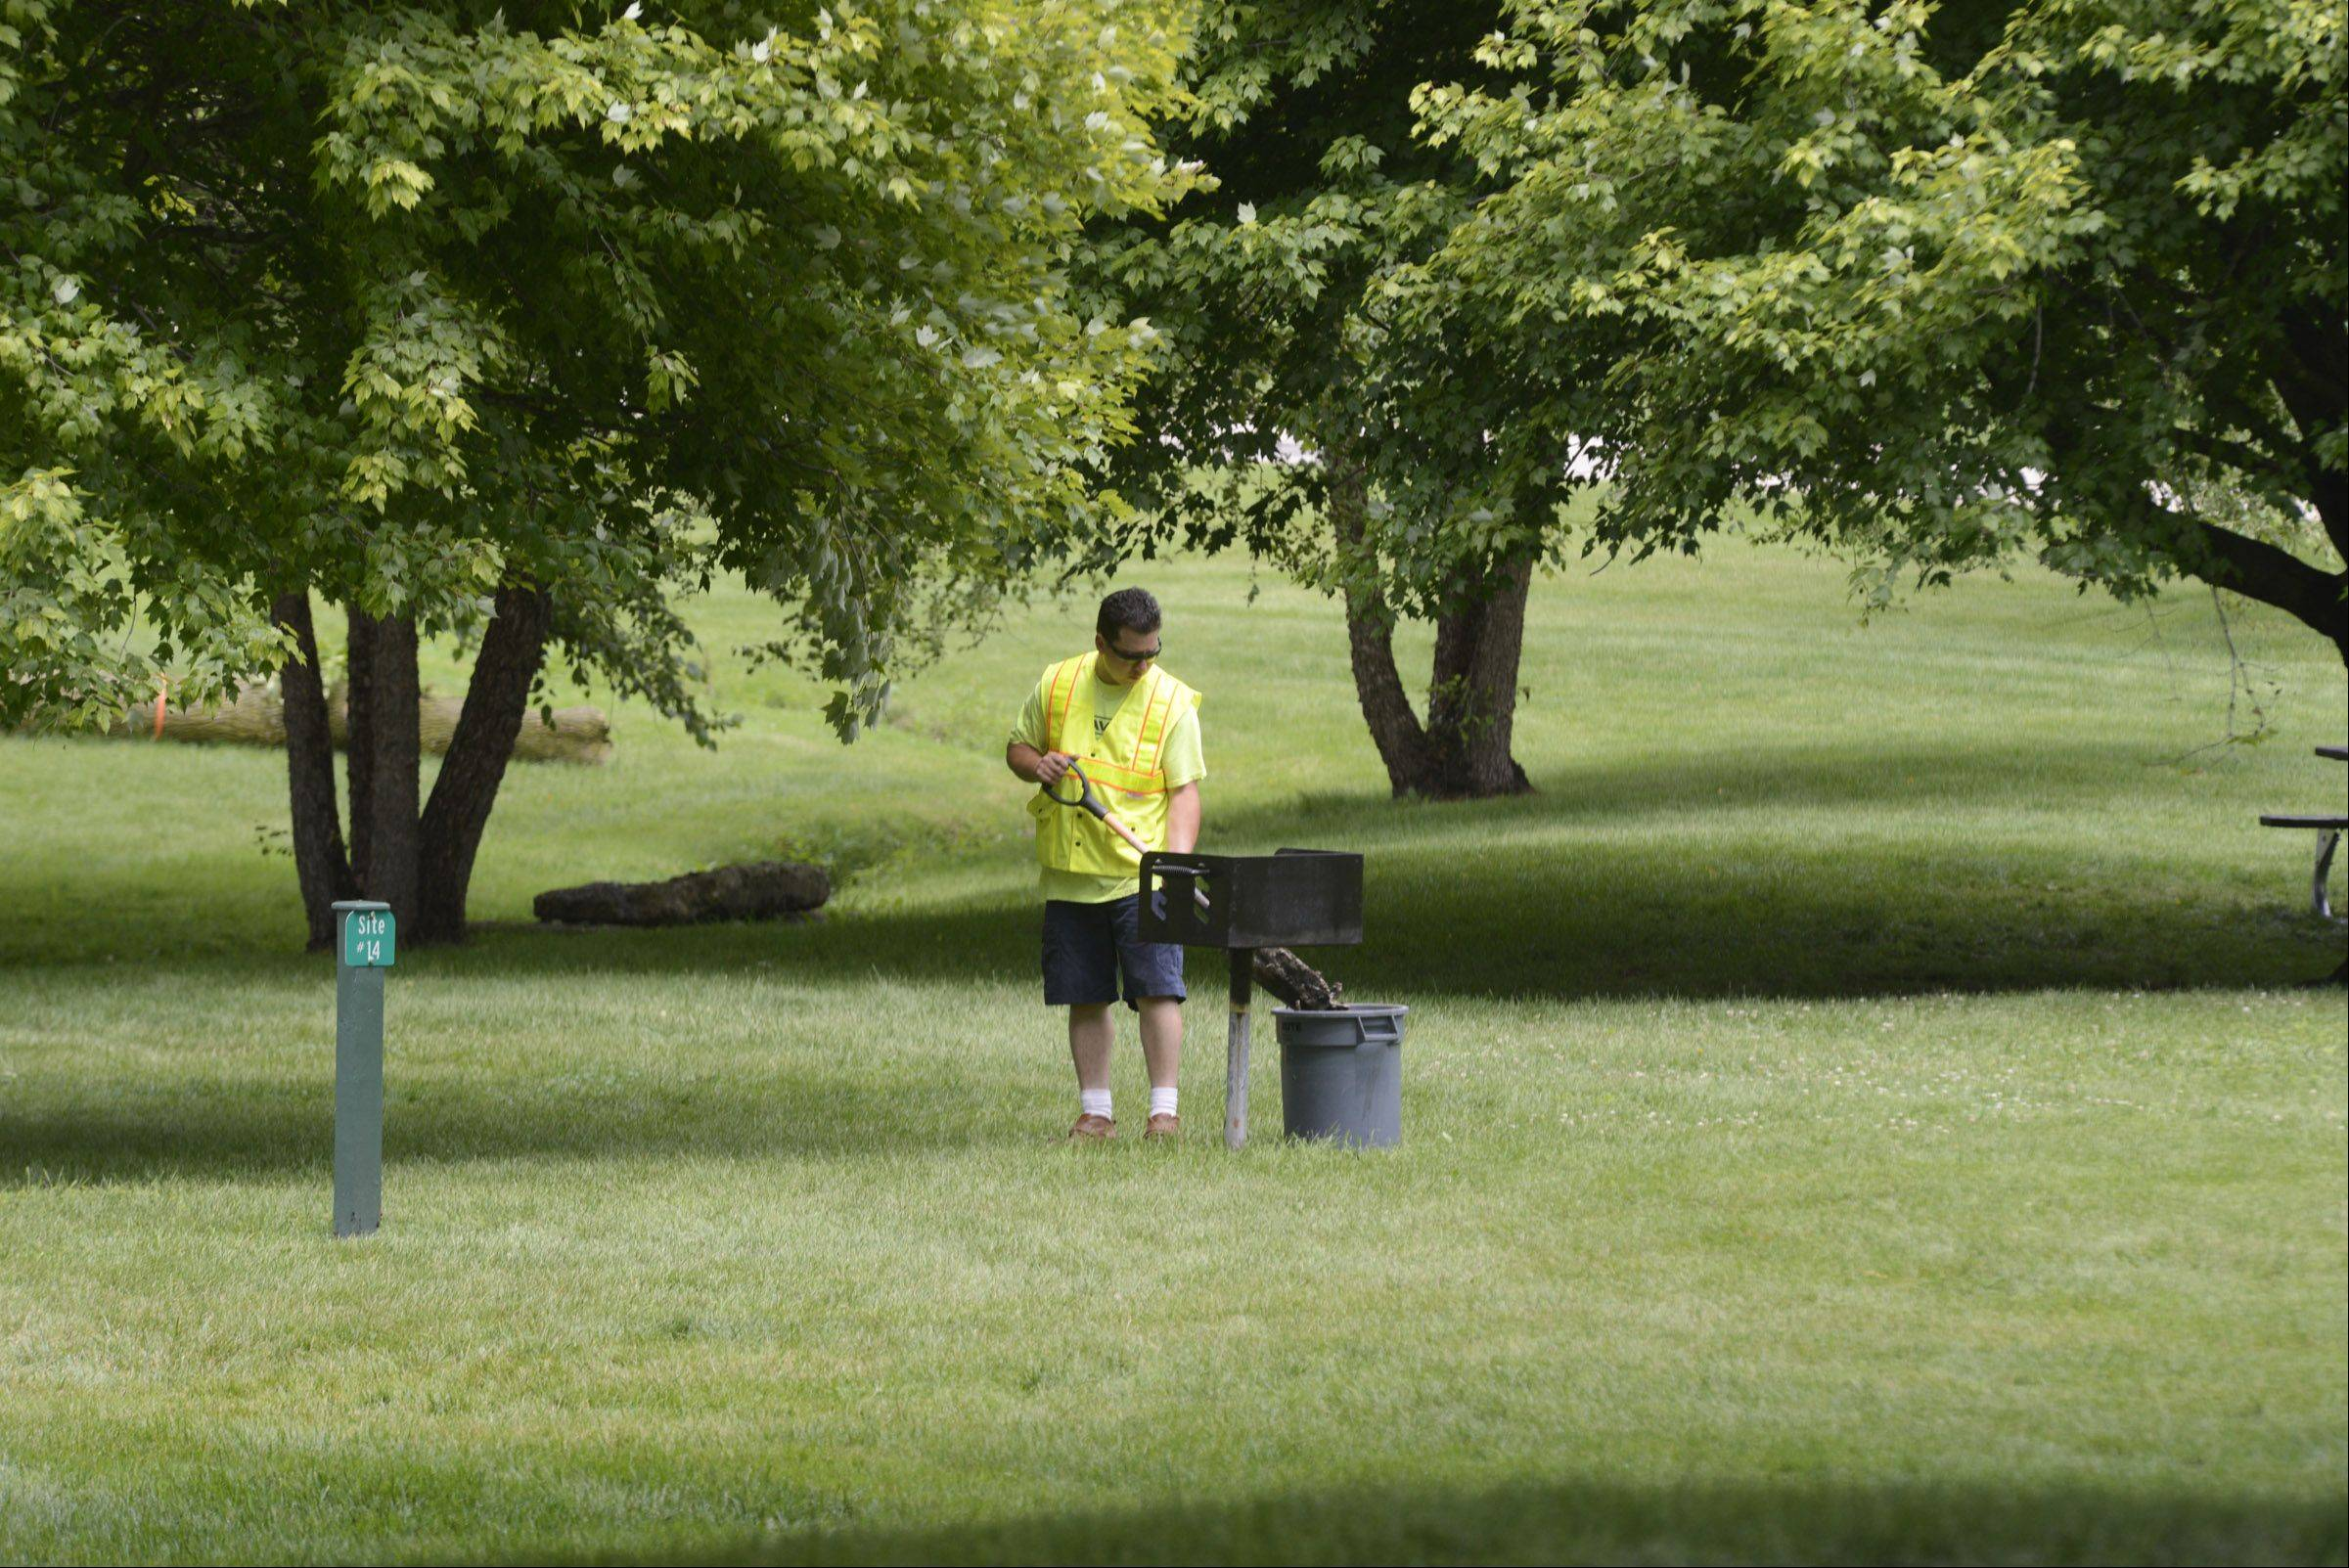 David Hernandez, of the Carpentersville Parks Department, cleans charcoal dust Monday from grills in Carpenter Park after a long holiday weekend. The park is undergoing a transformation of sorts, with several potentially diseased elm trees being removed, and a parking area being built.